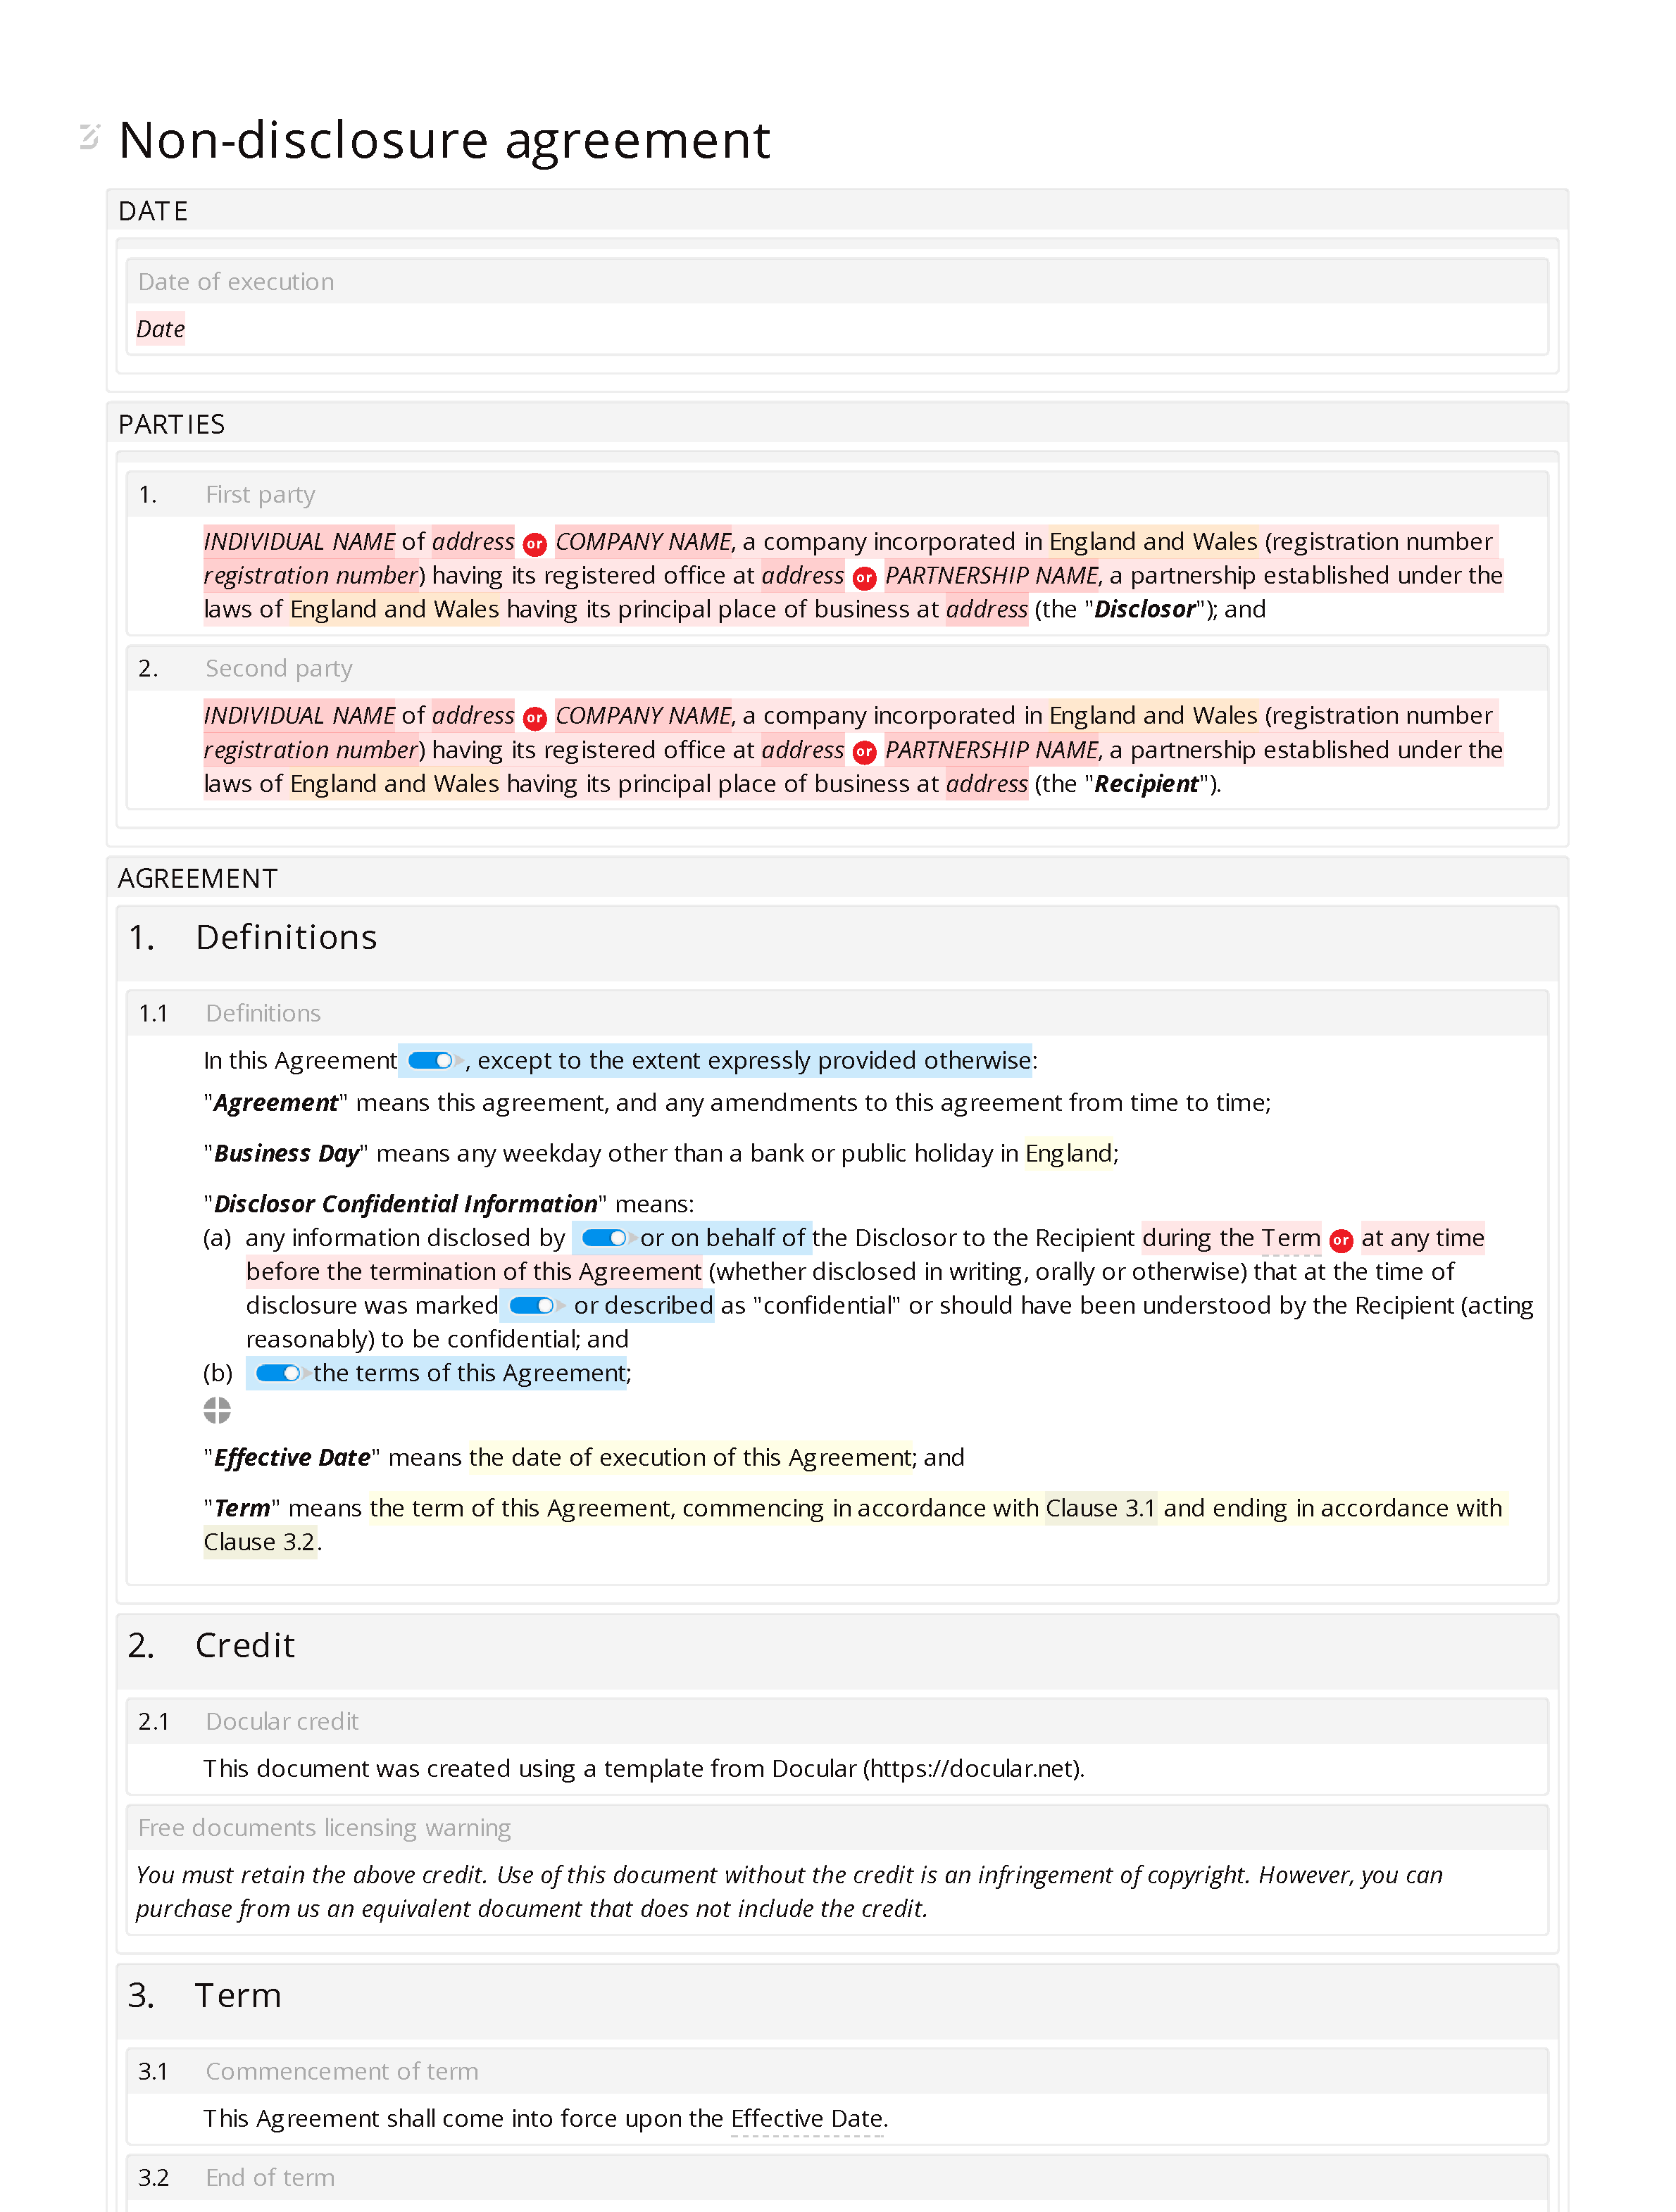 Free non-disclosure agreement document editor preview